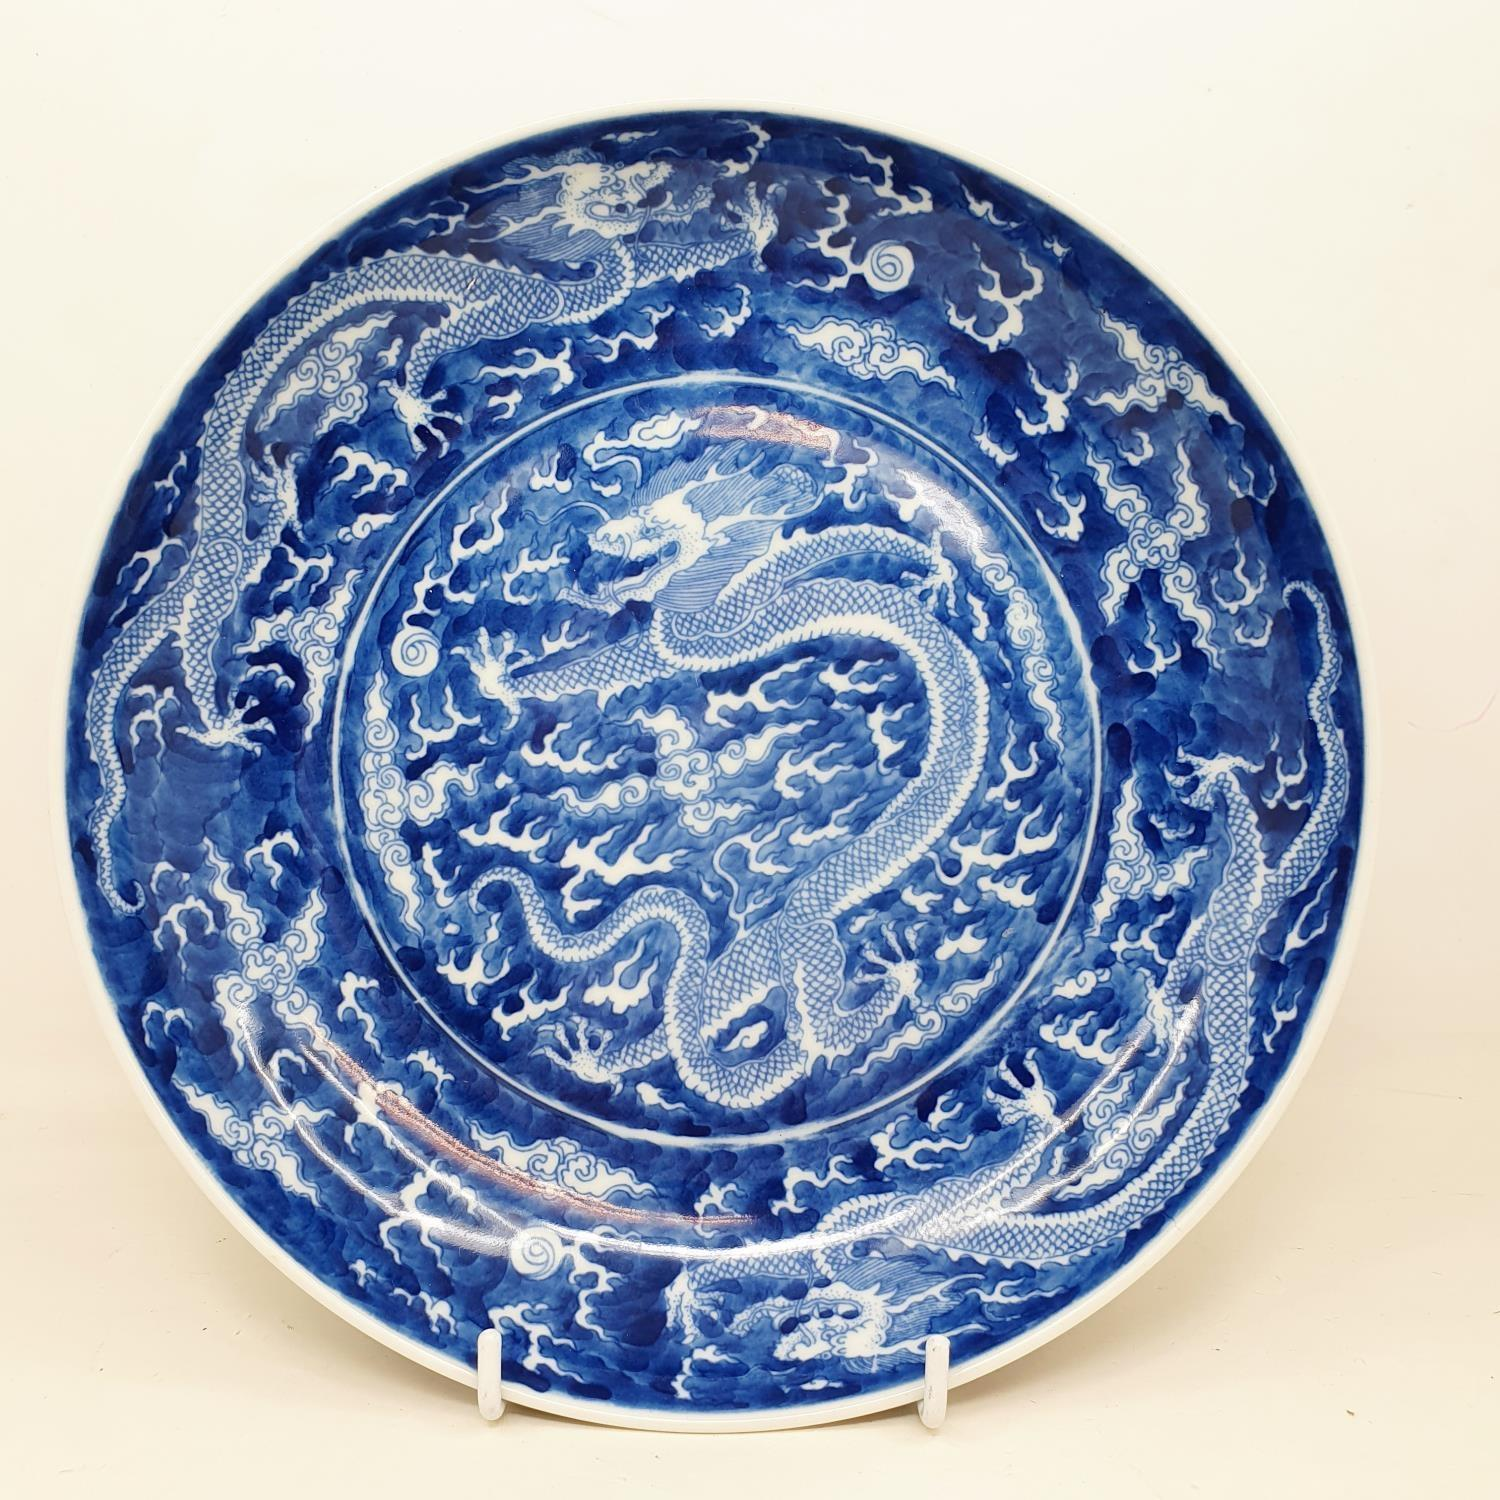 A Chinese blue and white plate, decorated with dragon chasing a flaming pearl, 25 cm diameter